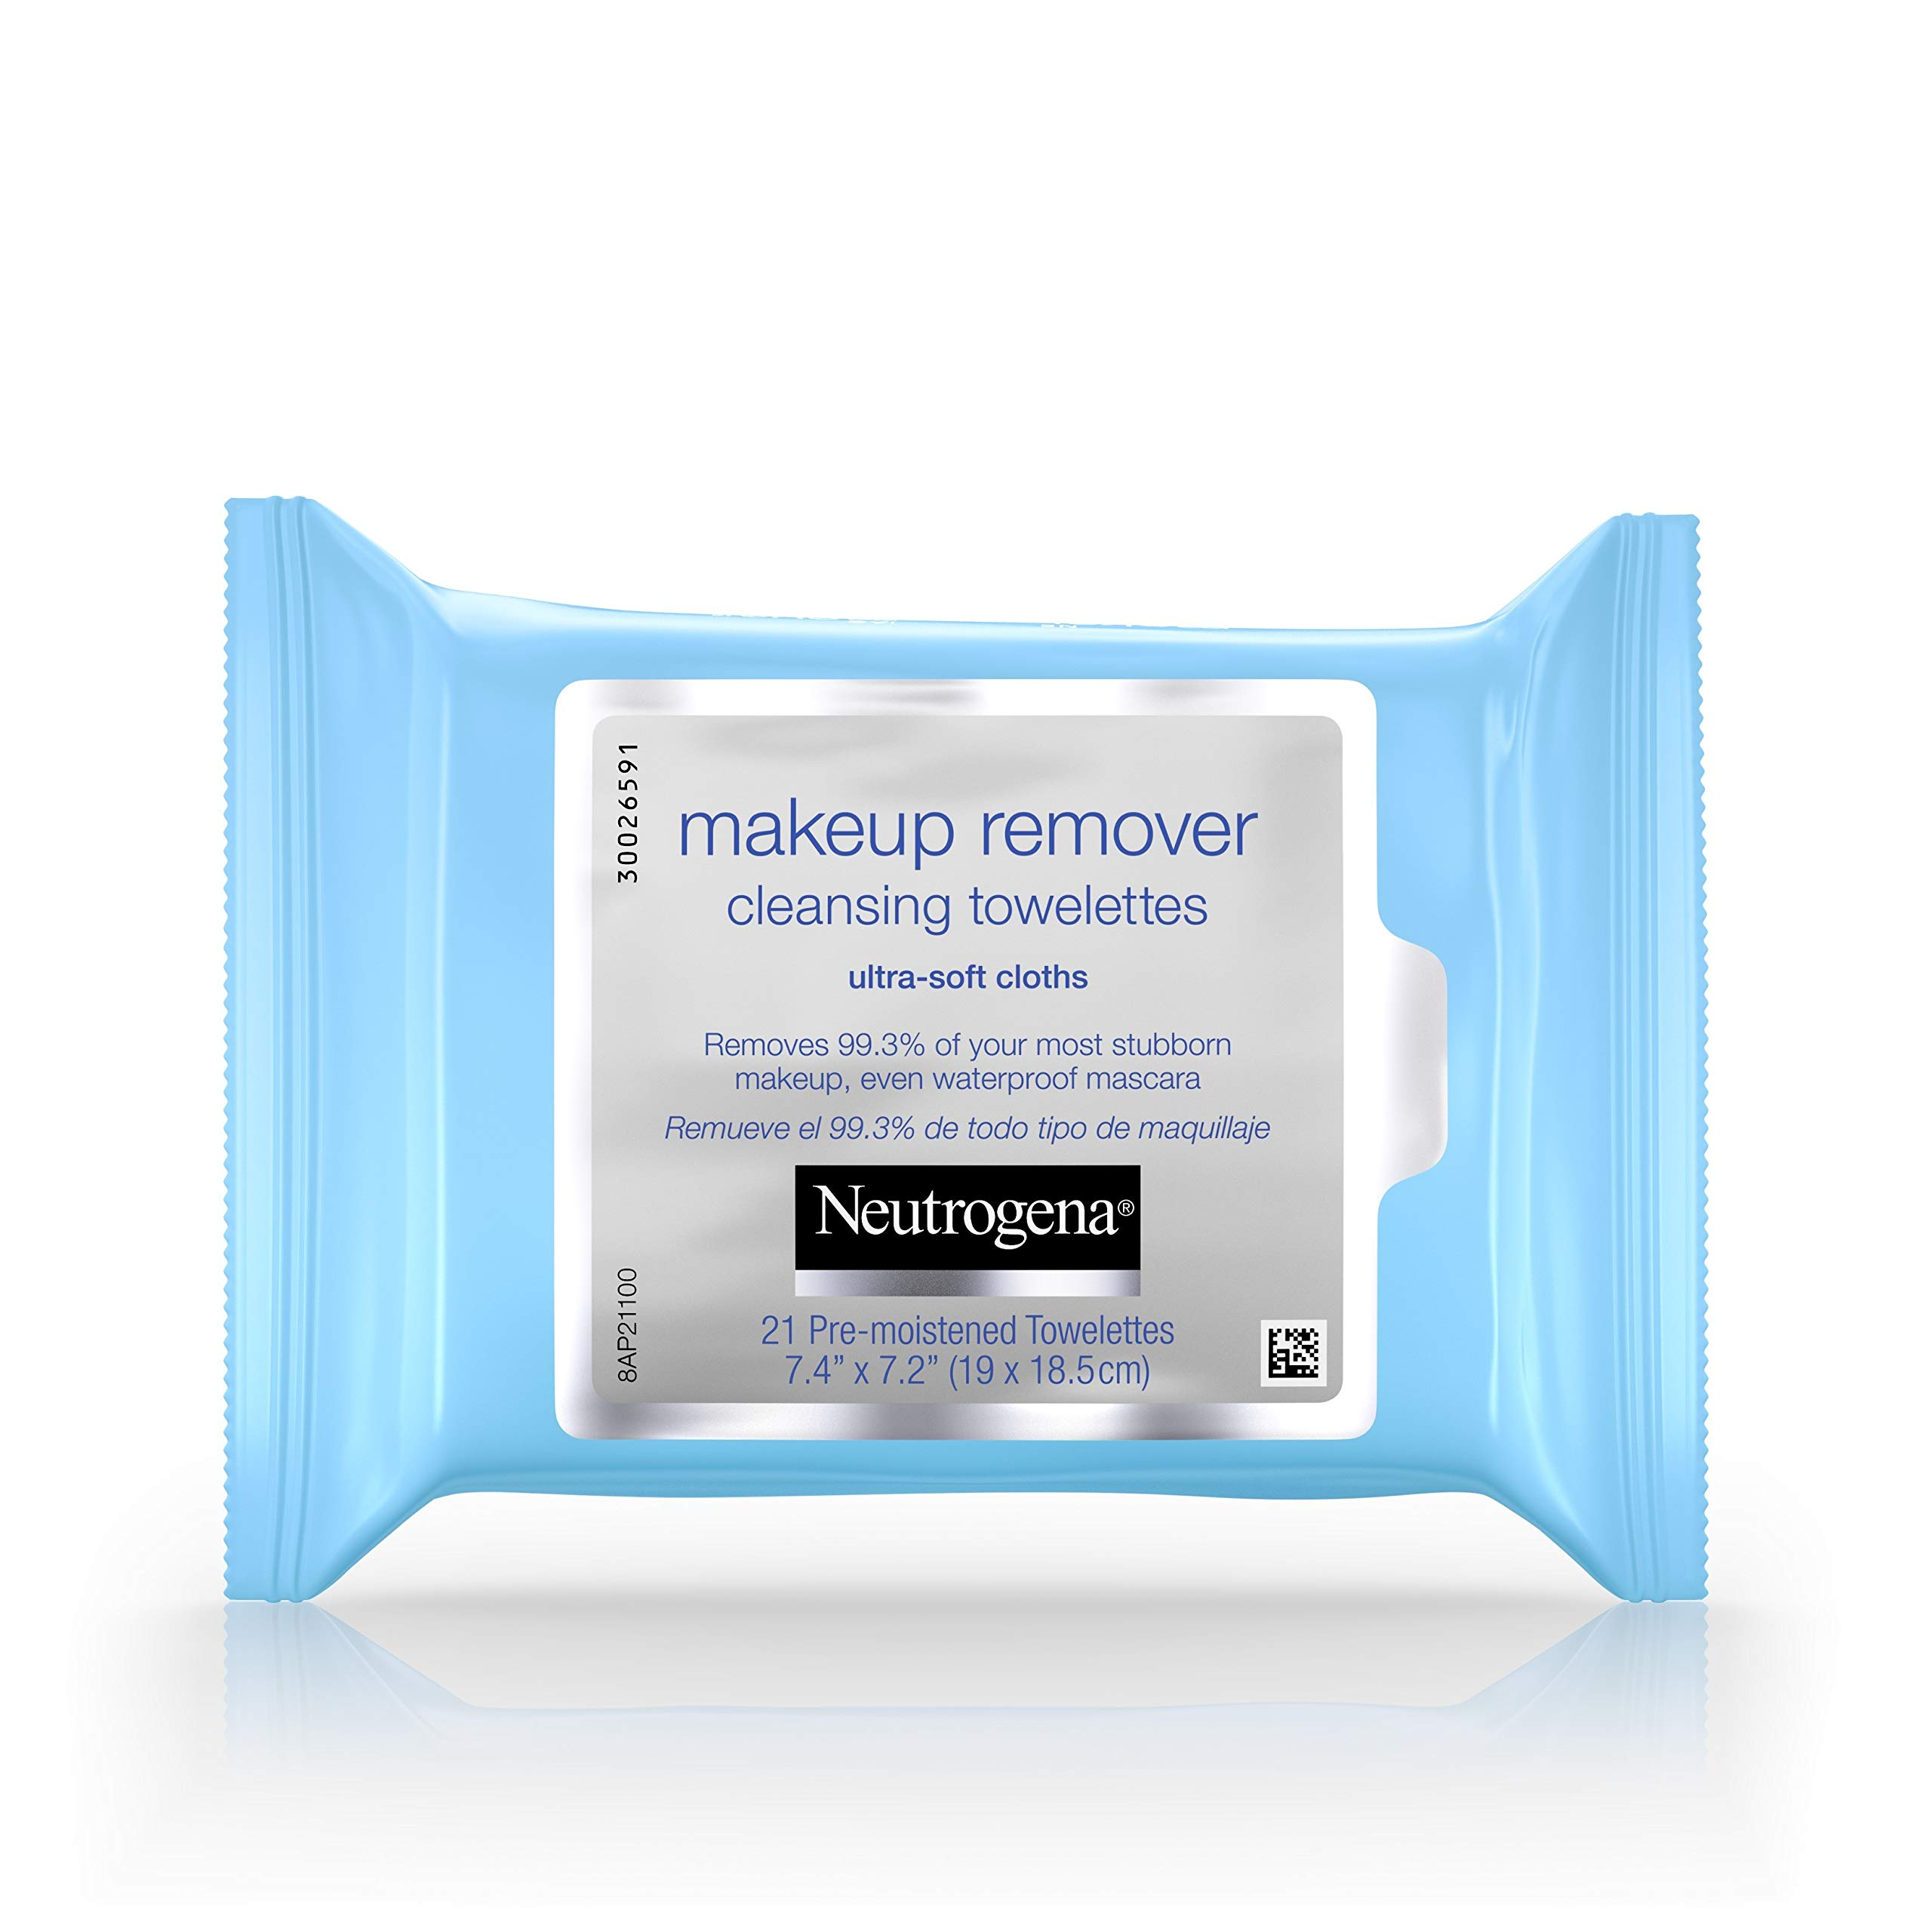 Neutrogena Makeup Remover Cleansing Towelettes & Wipes, 21 Count (Pack of 3) by Neutrogena